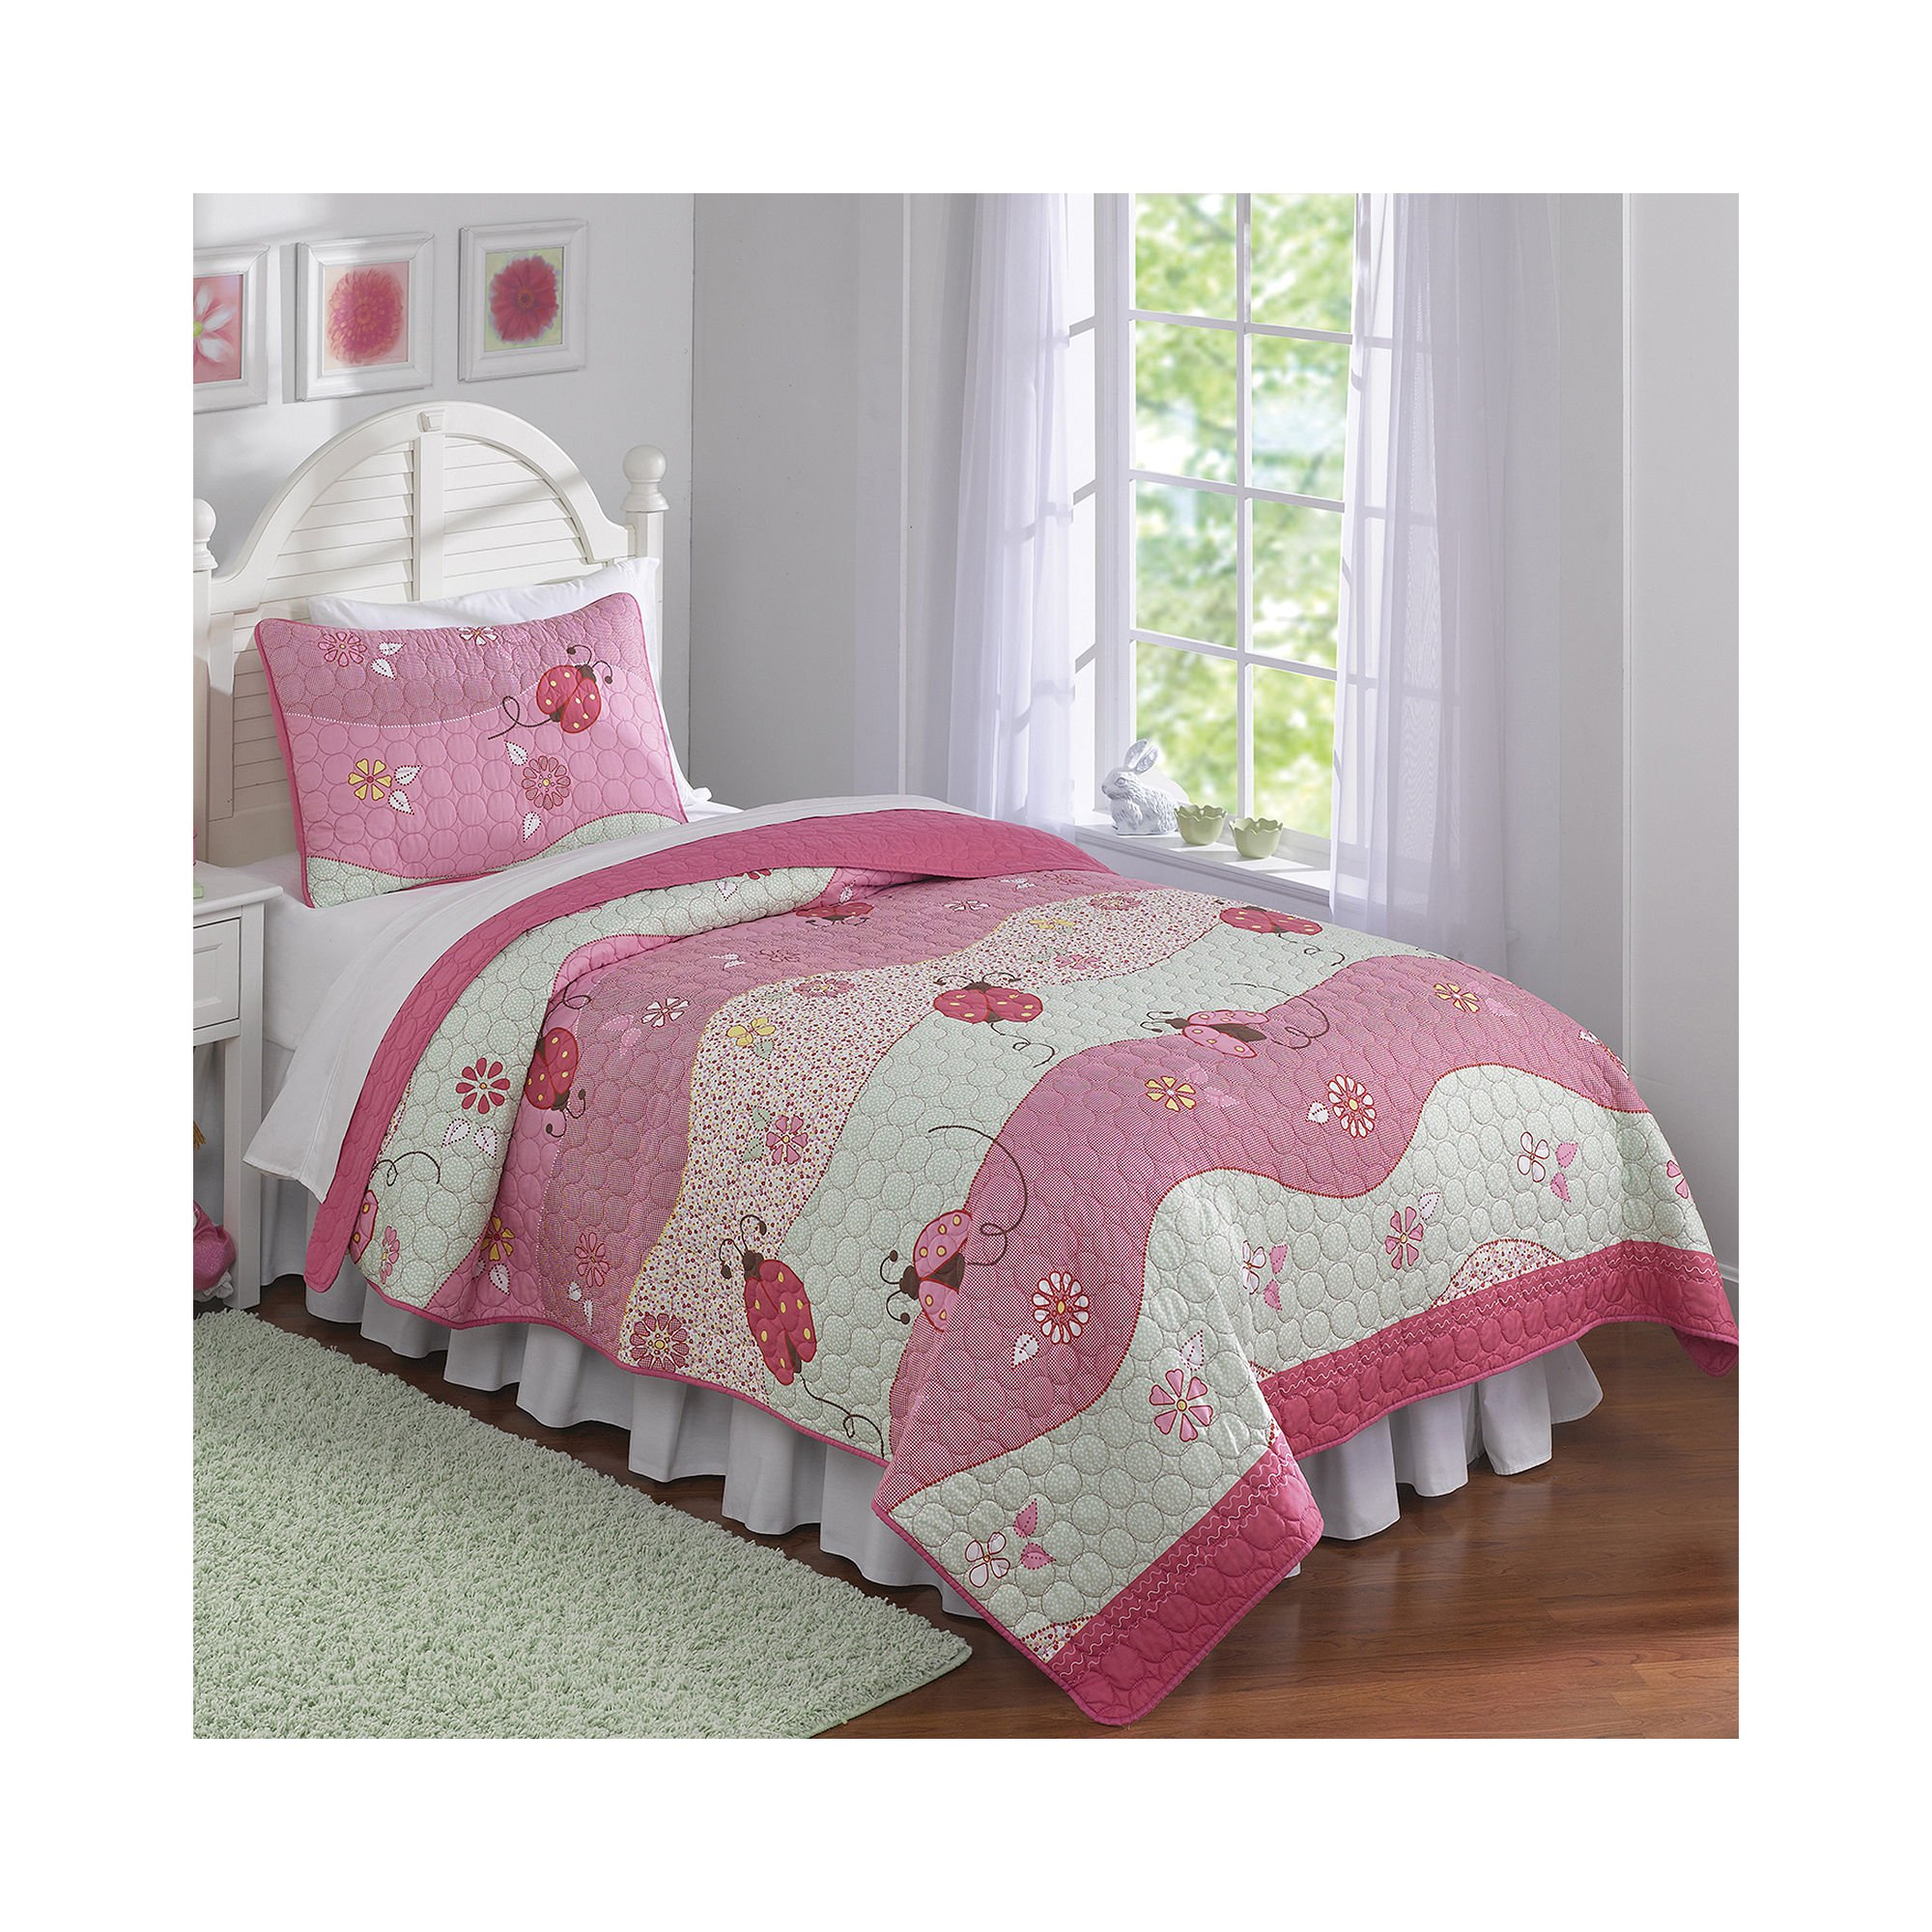 Pem America Garden Wave Quilt Set, Queen